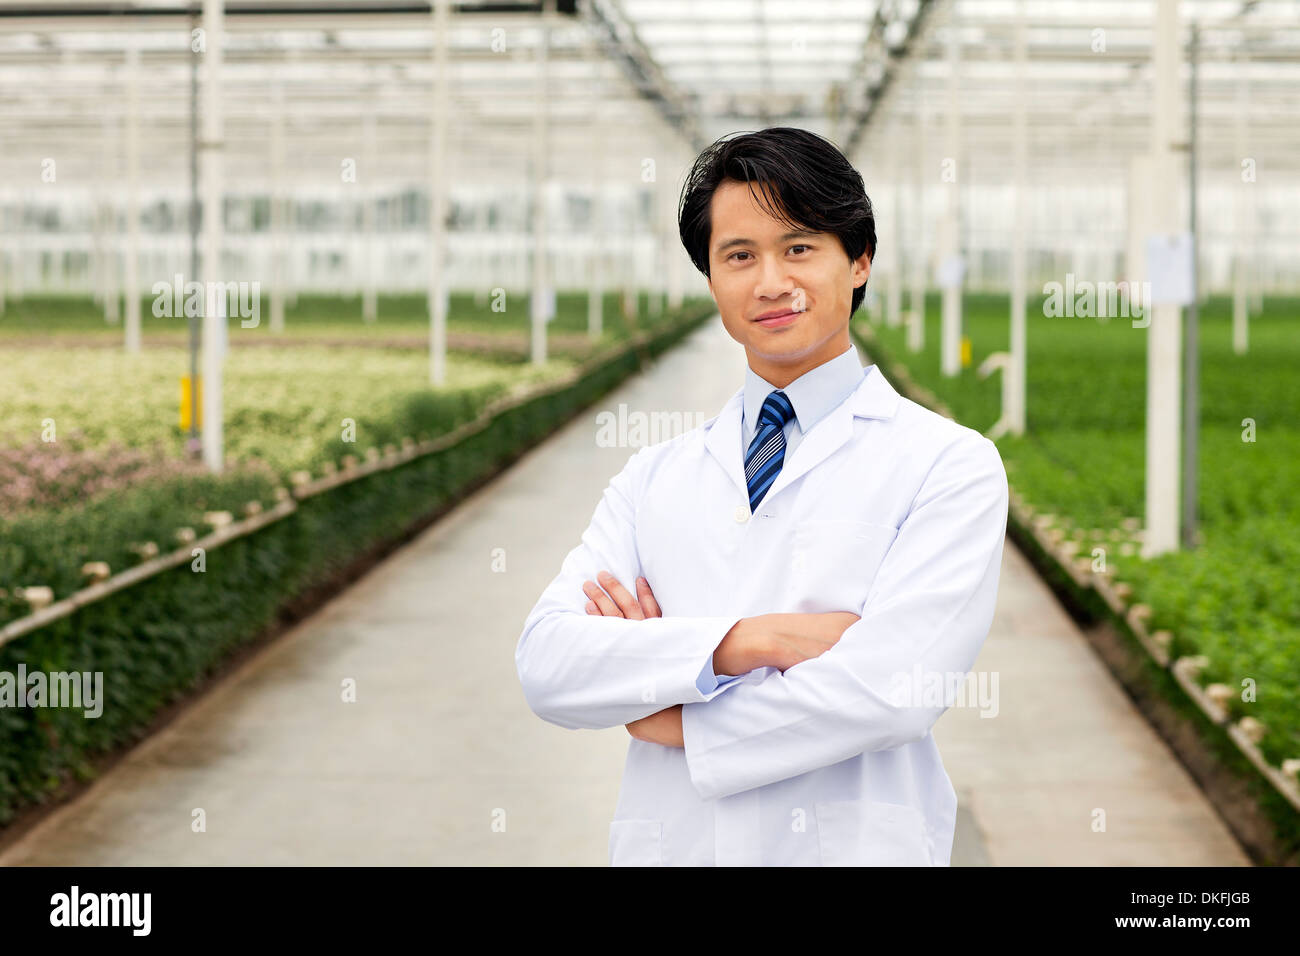 Scientist standing in front of rows of plants growing in greenhouse, arms folded Stock Photo